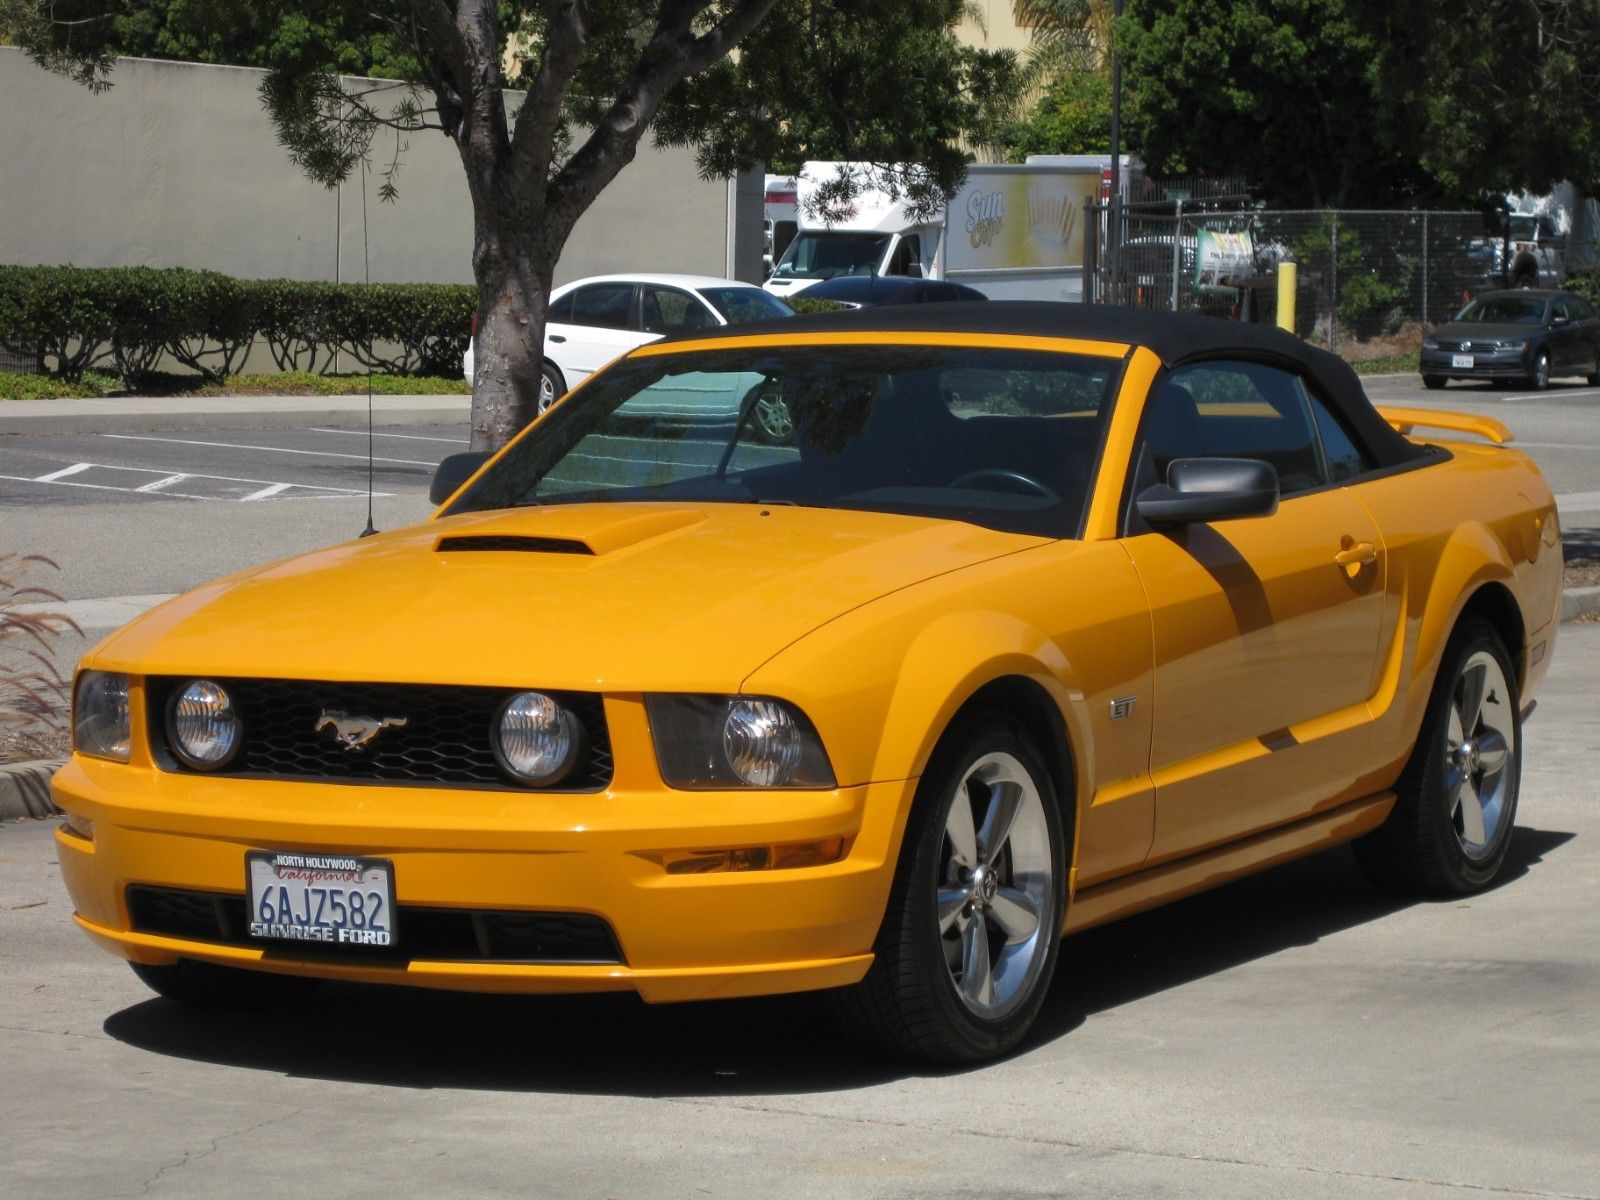 Used 2007 Ford Mustang 2007 Ford Mustang Gt Grabber Orange Low Miles 2018 2019 Mycarboard Com